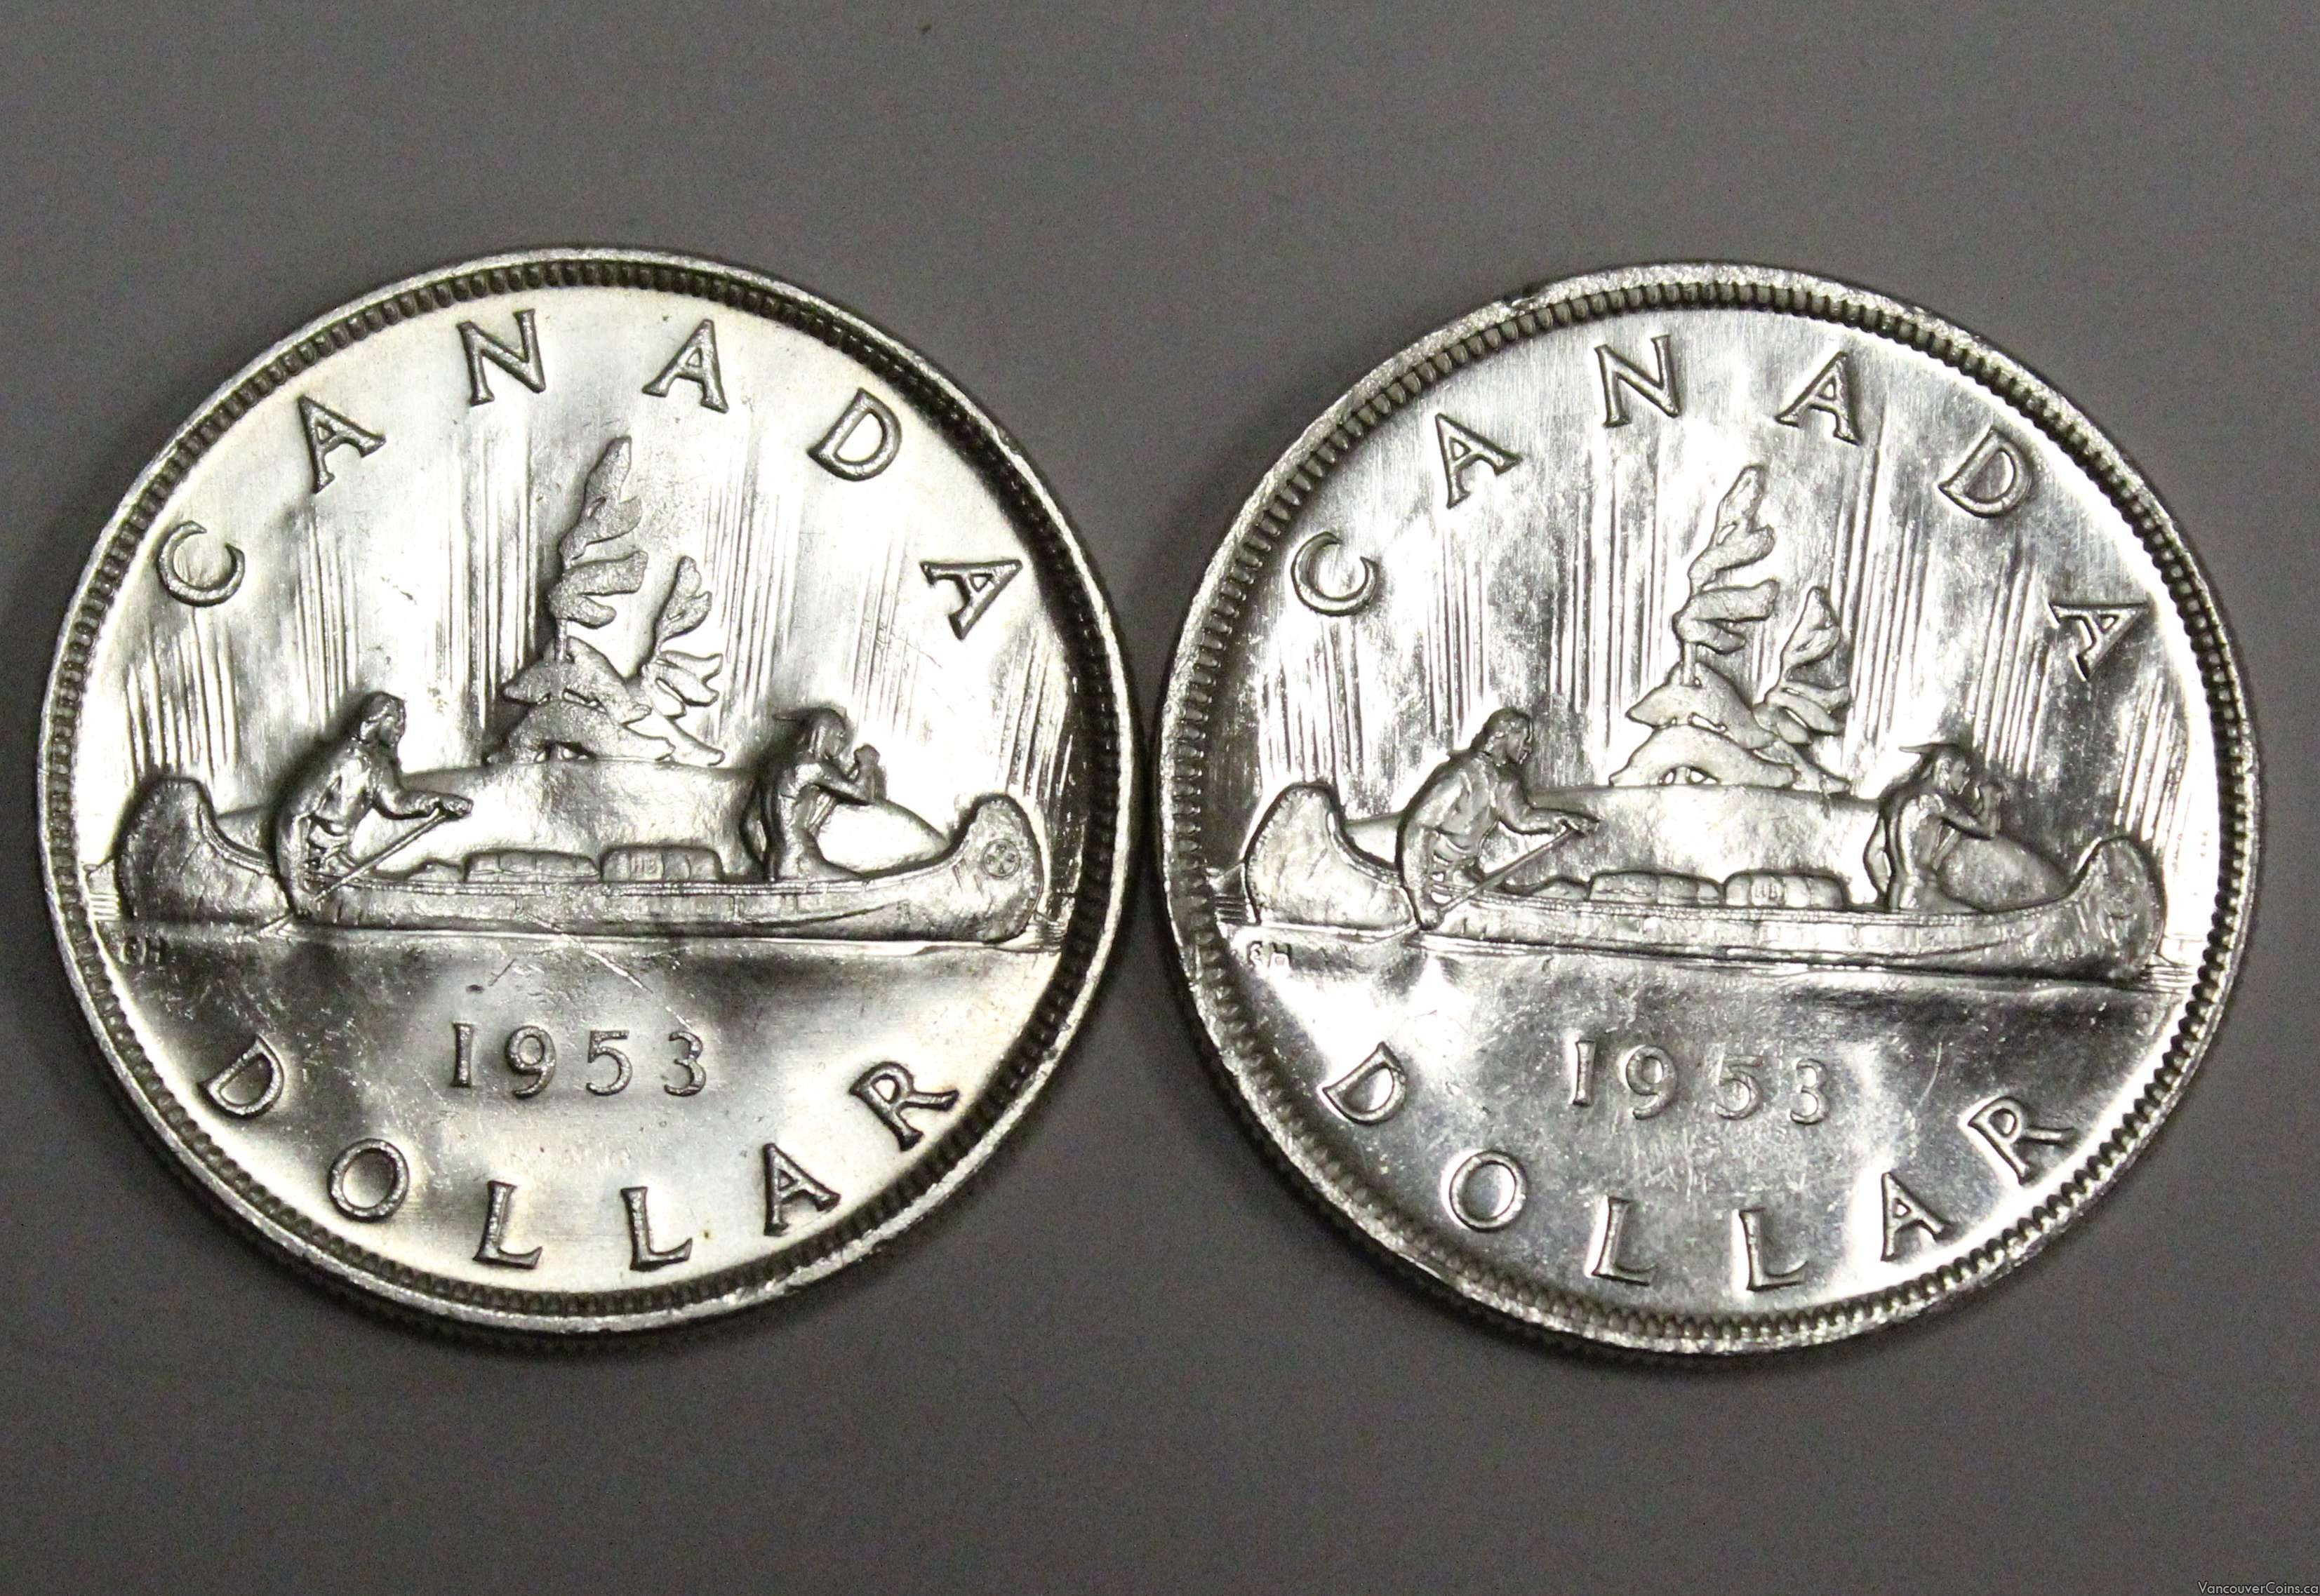 2011 CANADA $1 LOONIE UNC FROM MINT ROLL 100th ANNIVERSARY PARKS CANADA